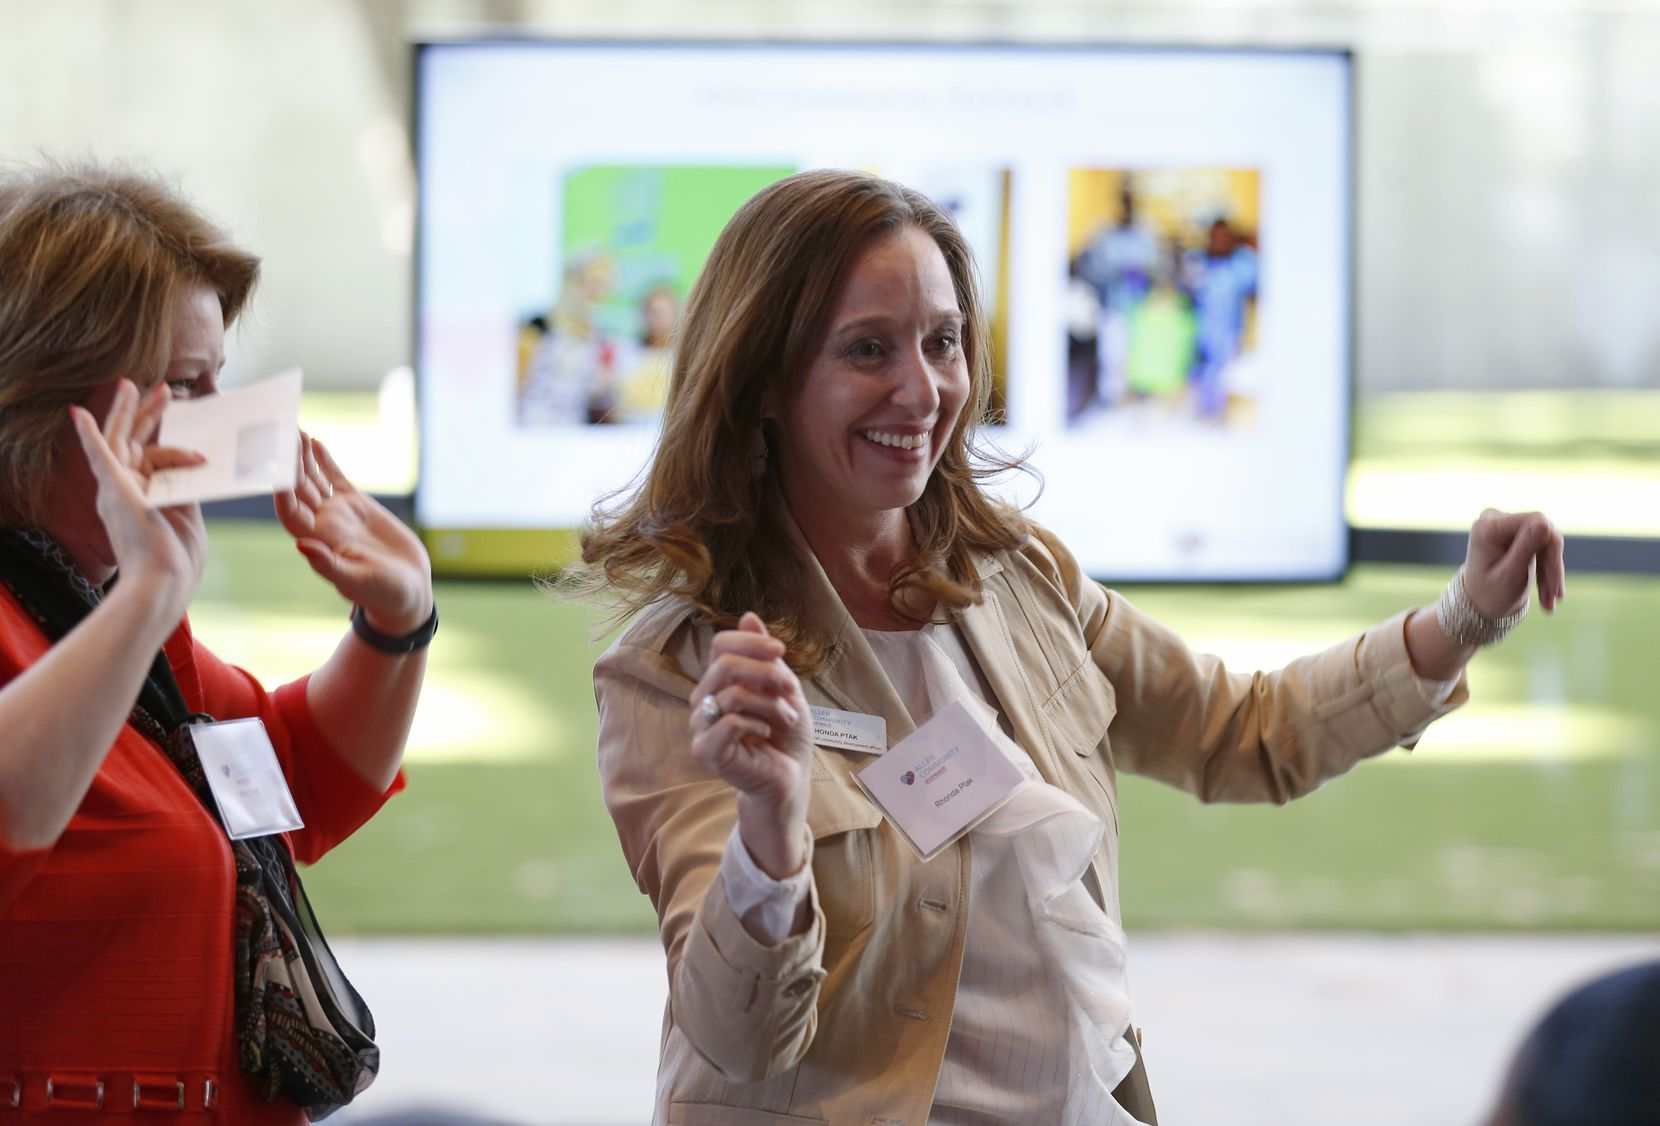 Allen Community Outreach's Amy Gnadt (left) and Rhonda Ptak dance their way back to their seats after picking up a check they received during the The Dallas Morning News Charities 2019-20 Campaign Kickoff Reception at Winspear Opera House in Dallas.